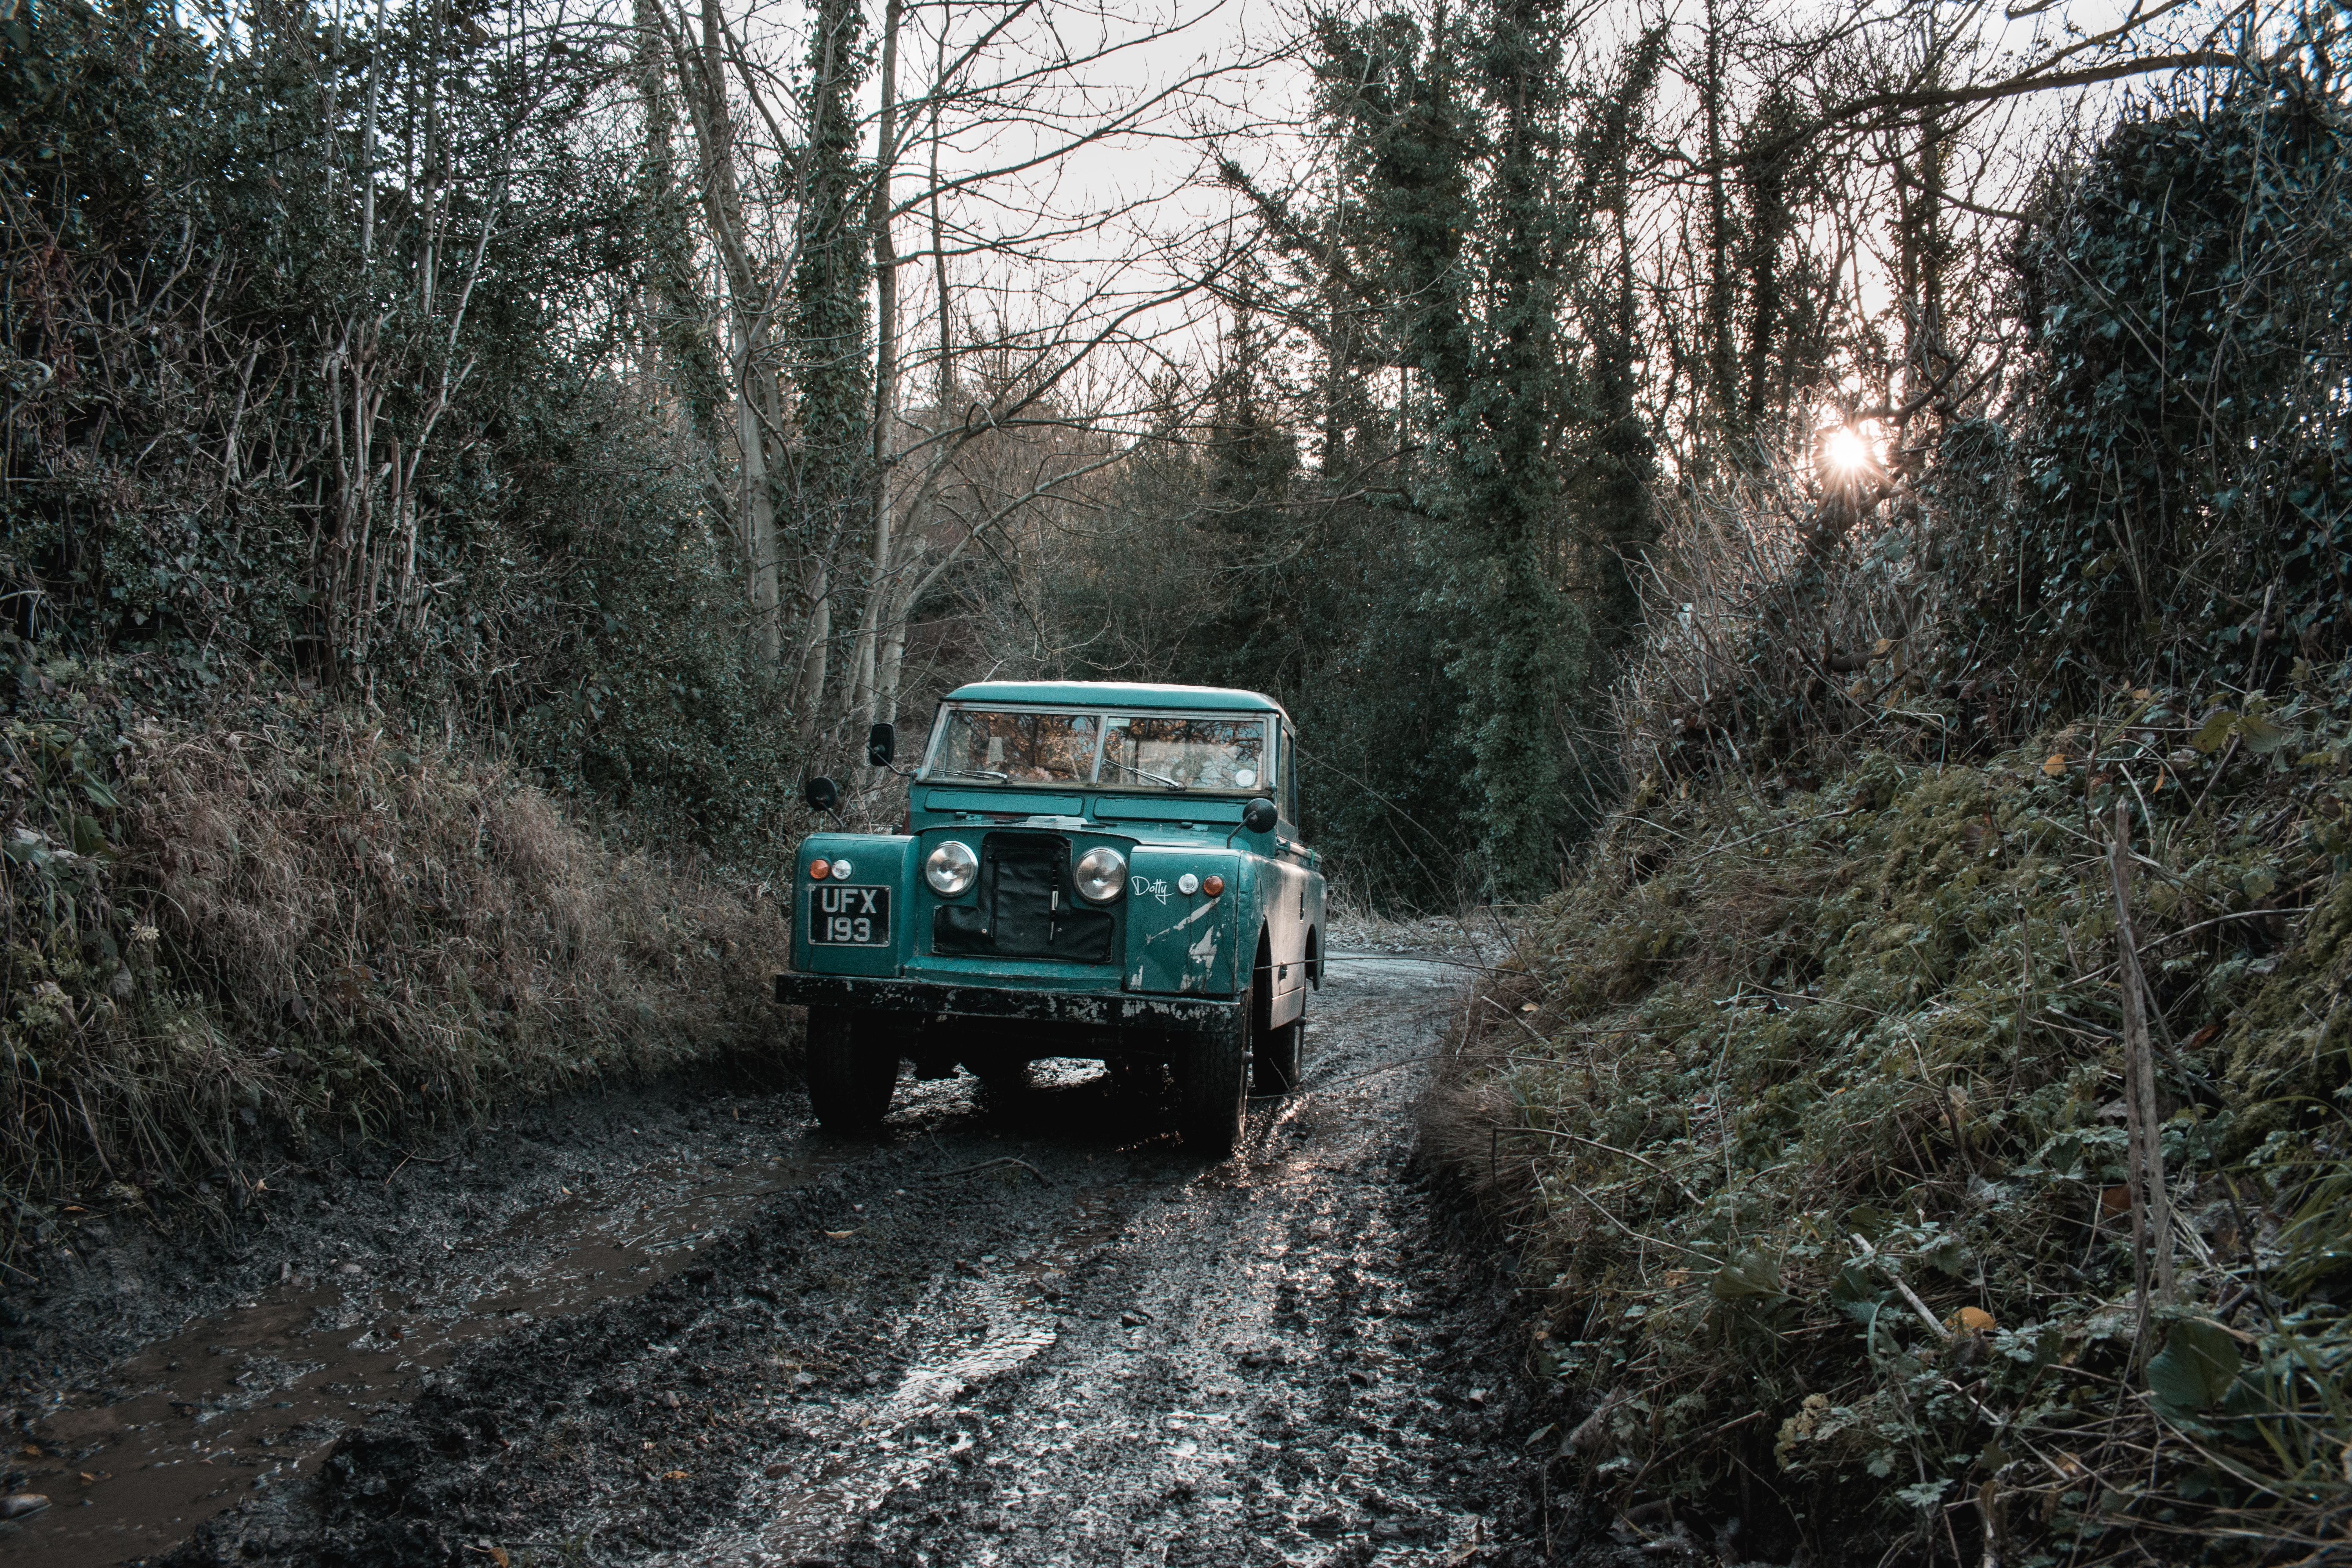 green car on rough road during daytime